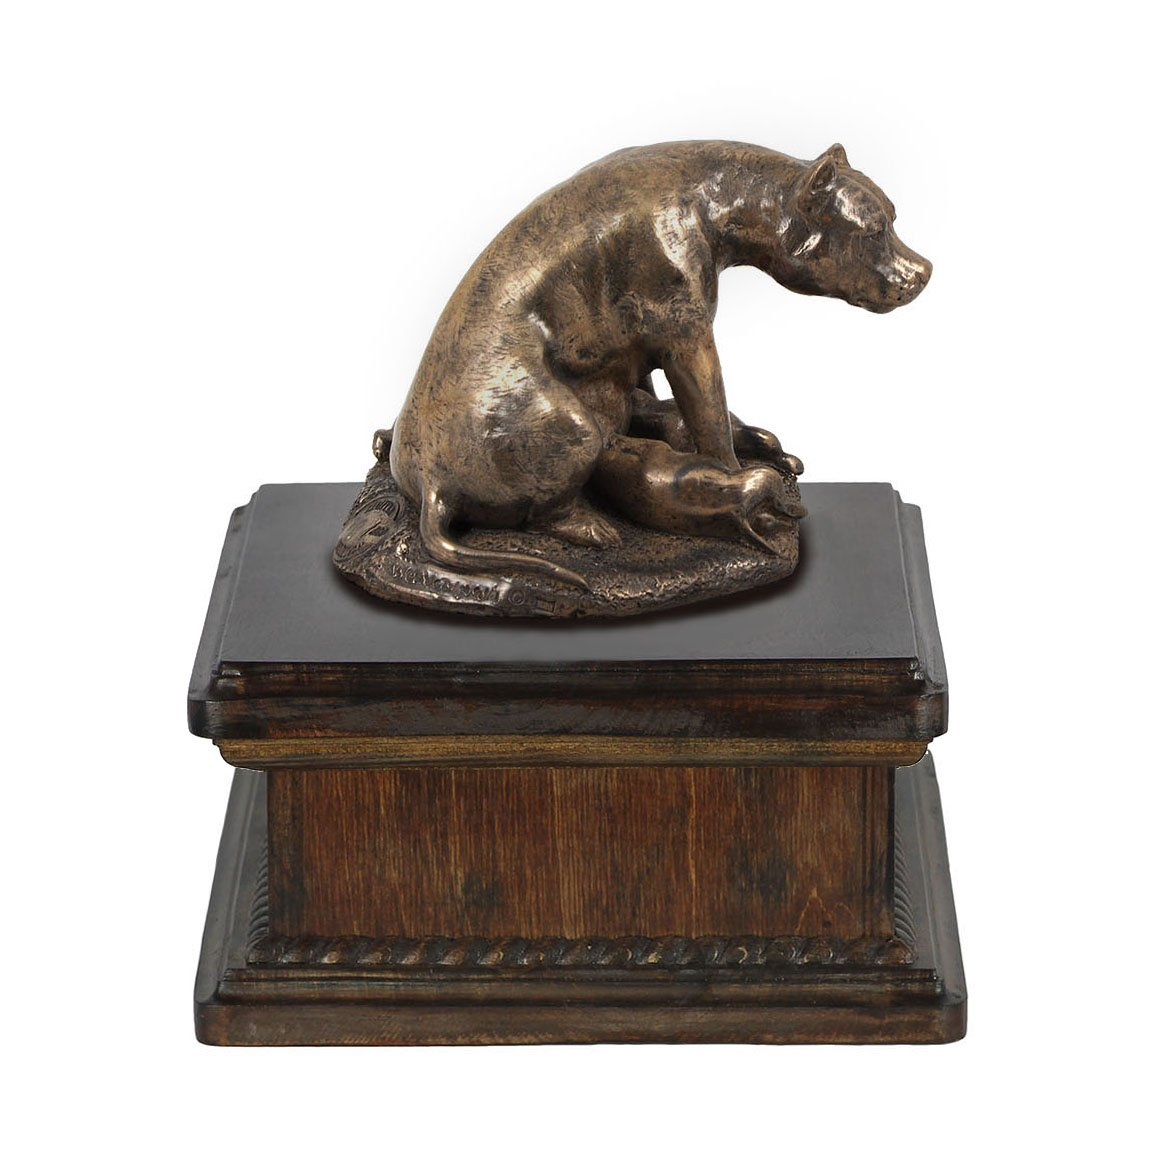 Staffordshire Bull Terrier (mama), memorial, urn for dog's ashes, with dog statue, exclusive, ArtDog